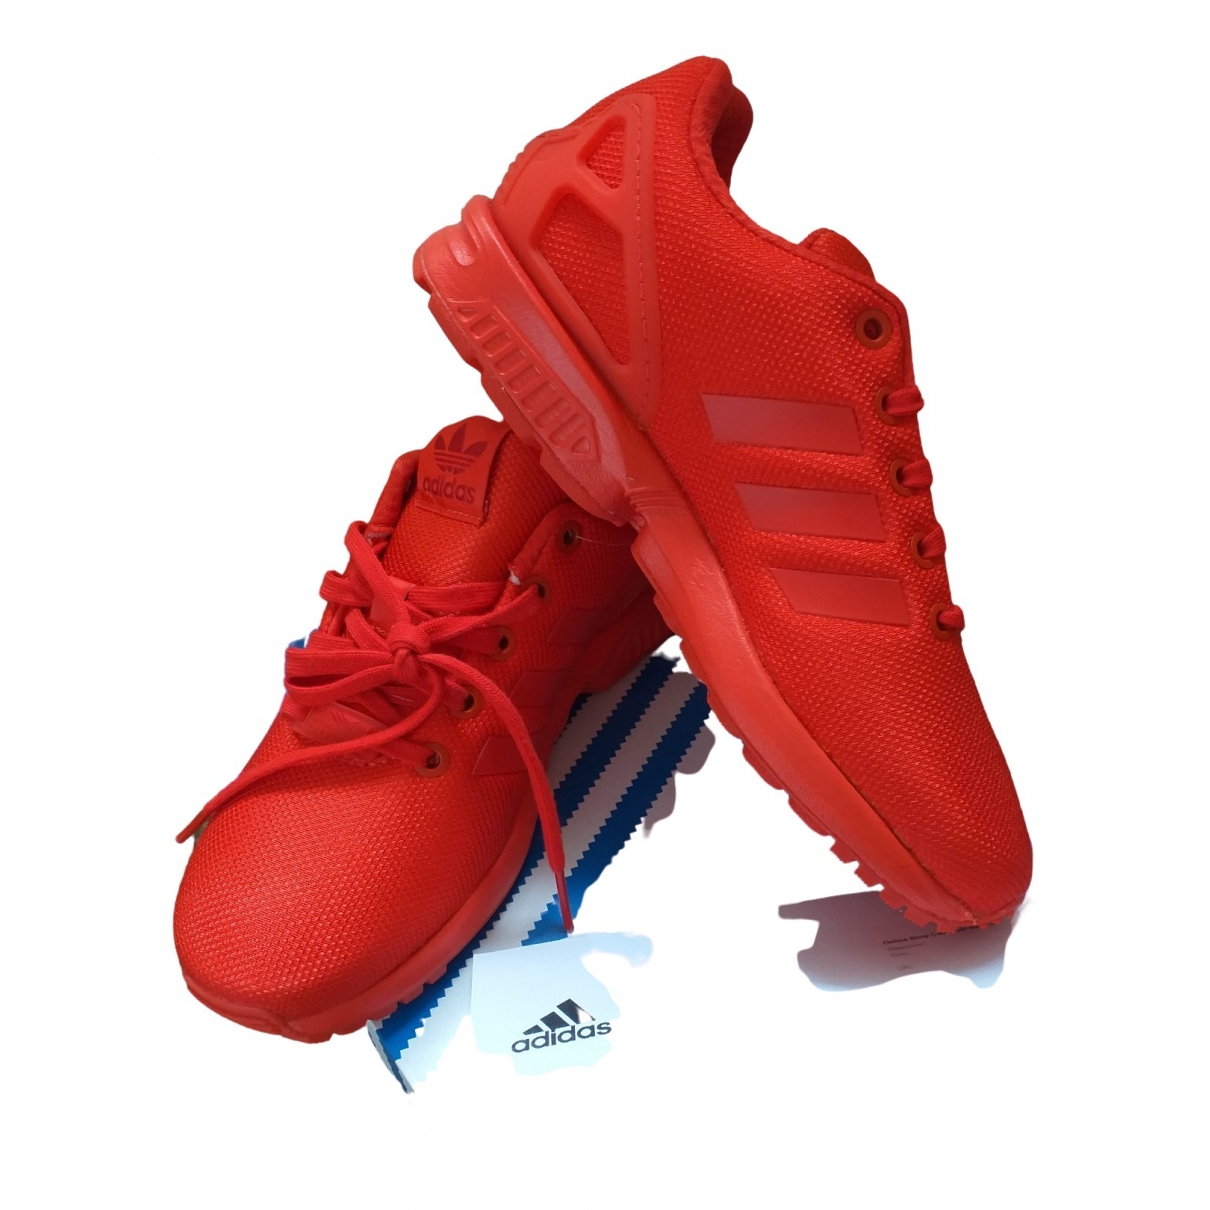 Adidas ZX Sneakers in  Rot Leinen